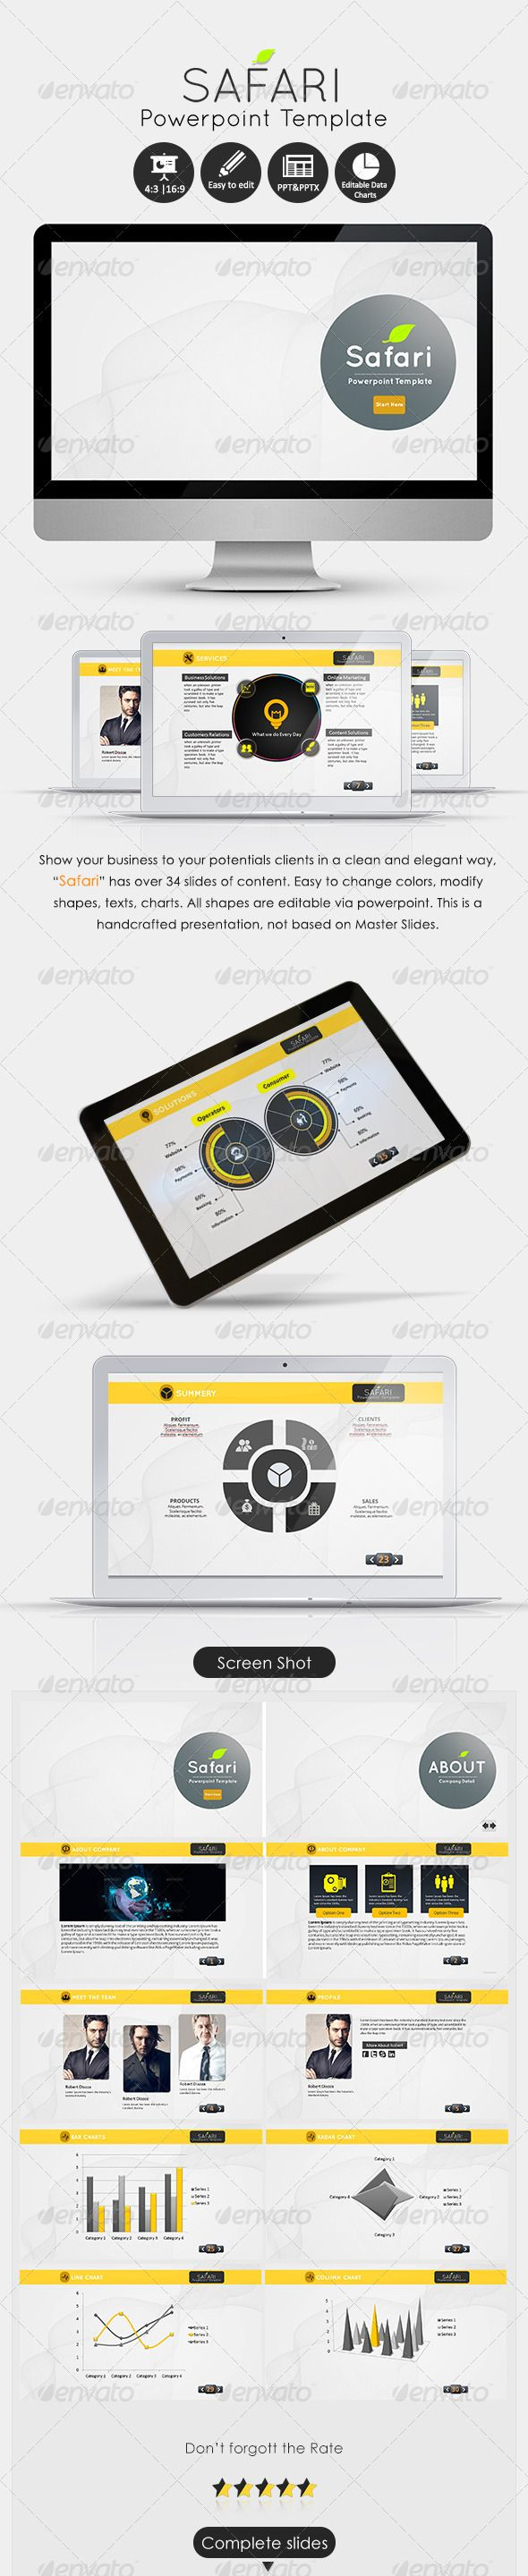 Jquery plugins to work with data presentation and grid layout - Creative Powerpoint Powerpoint Presentation Templates Design Templates Creative Industries Safari Ppt File Data Charts You Videos Personal Portfolio